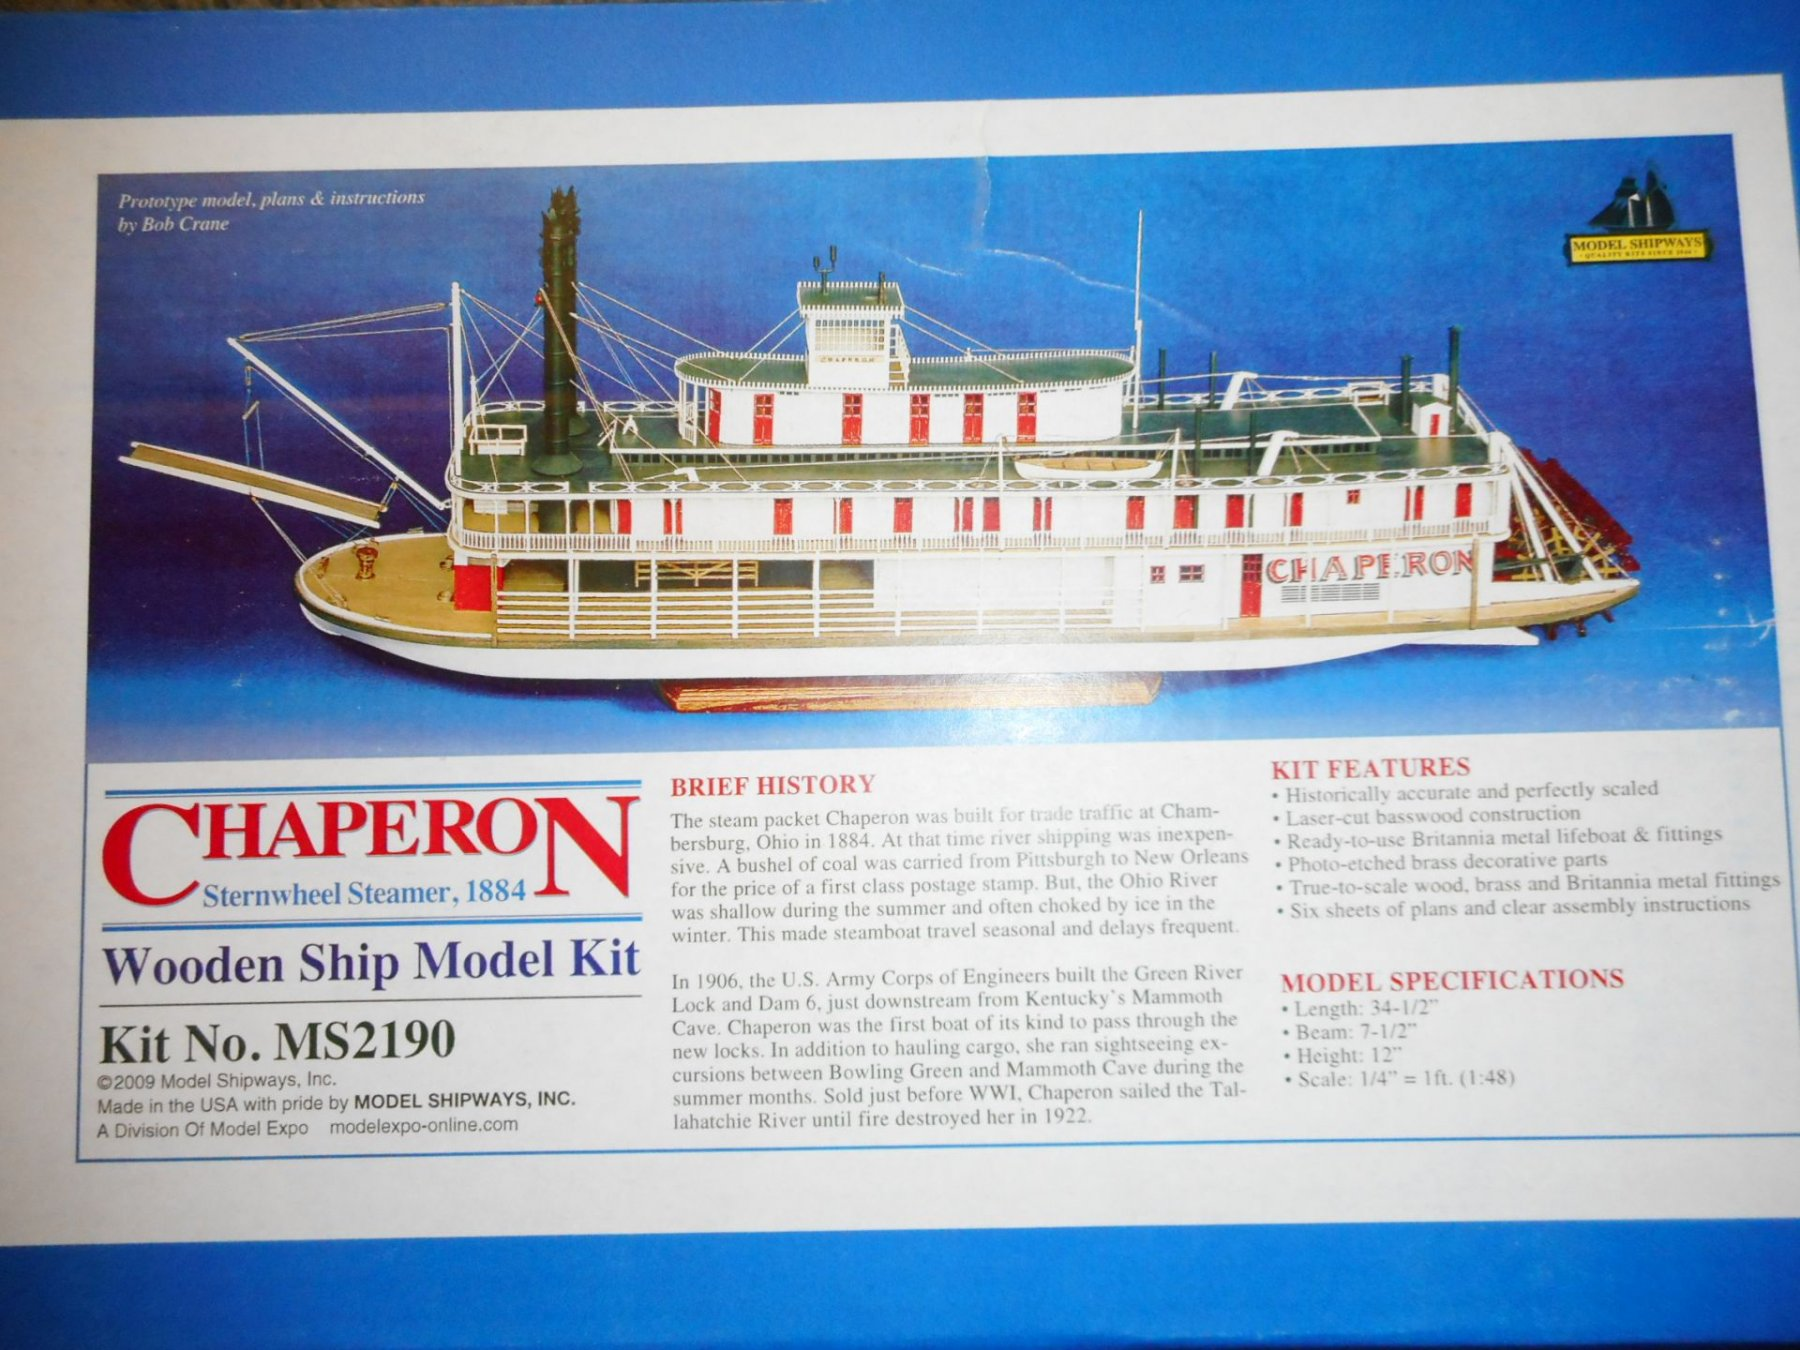 Chaperon by vossy - Model Shipways - 1:48 - Build Logs for